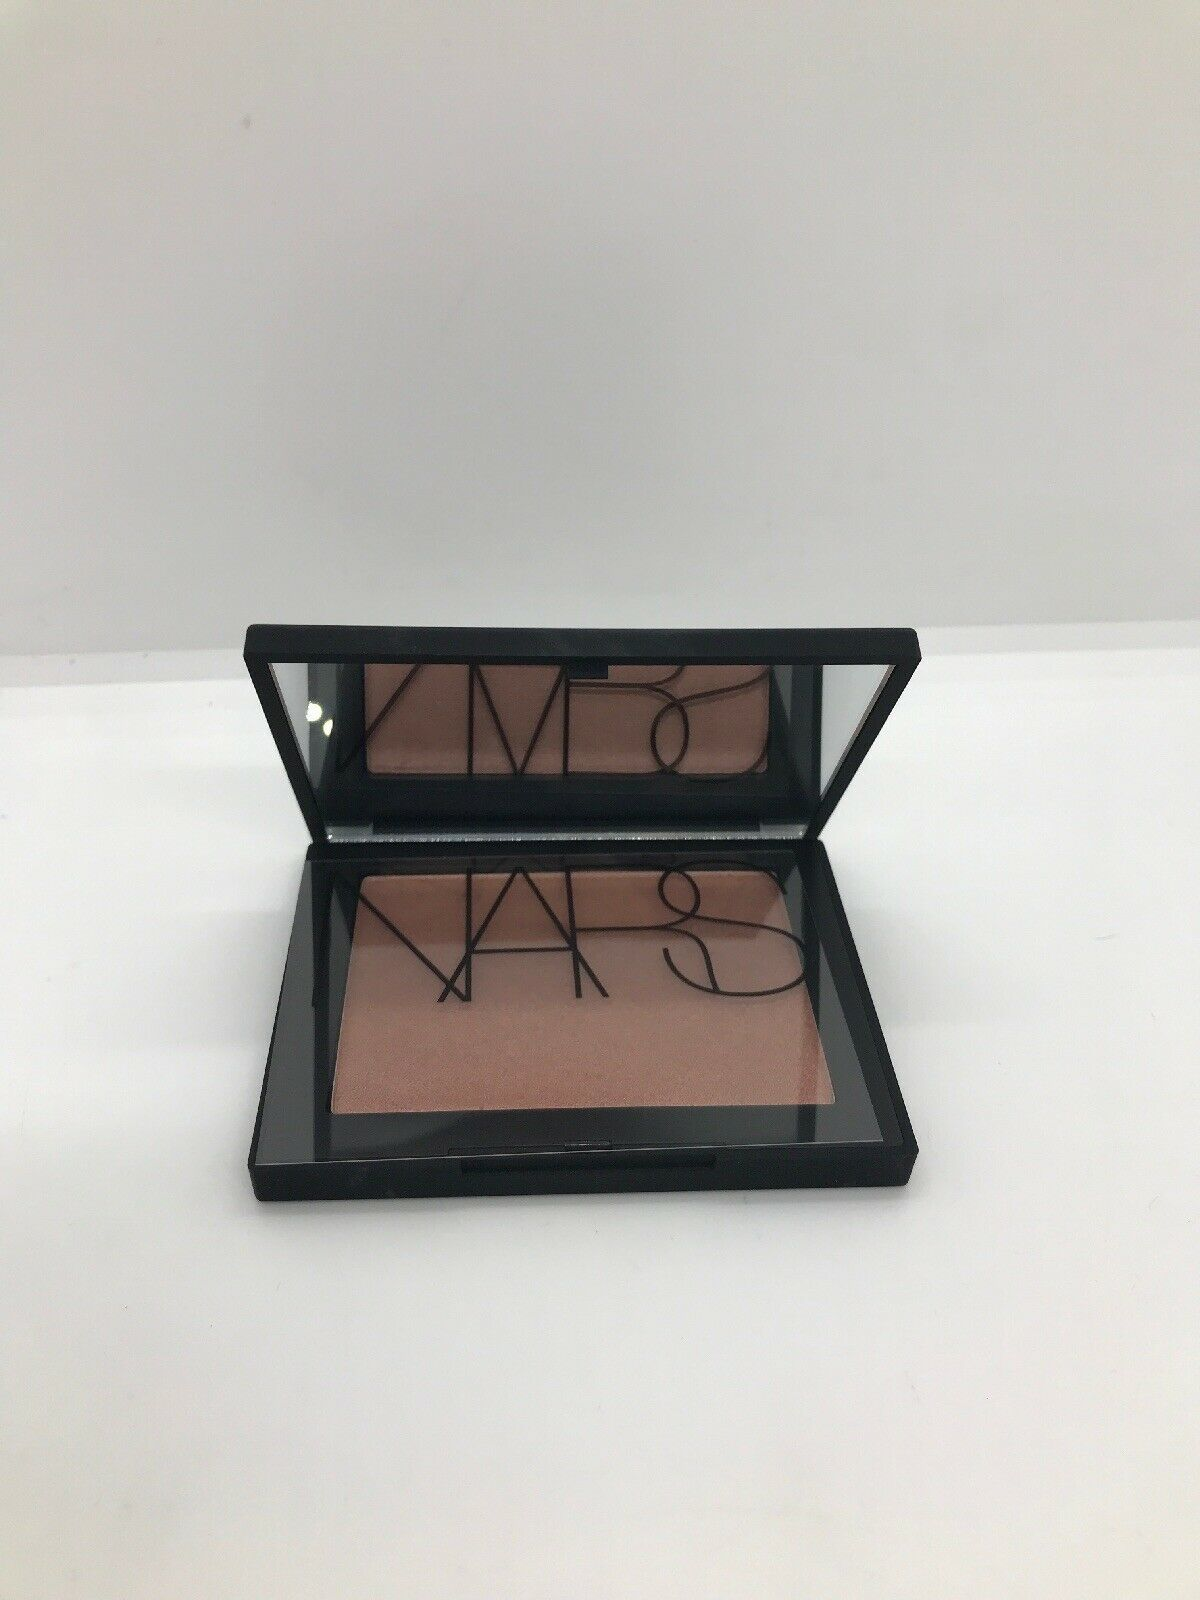 Primary image for Nars Highlighting Powder - Maldives 0.16oz (4.8g)